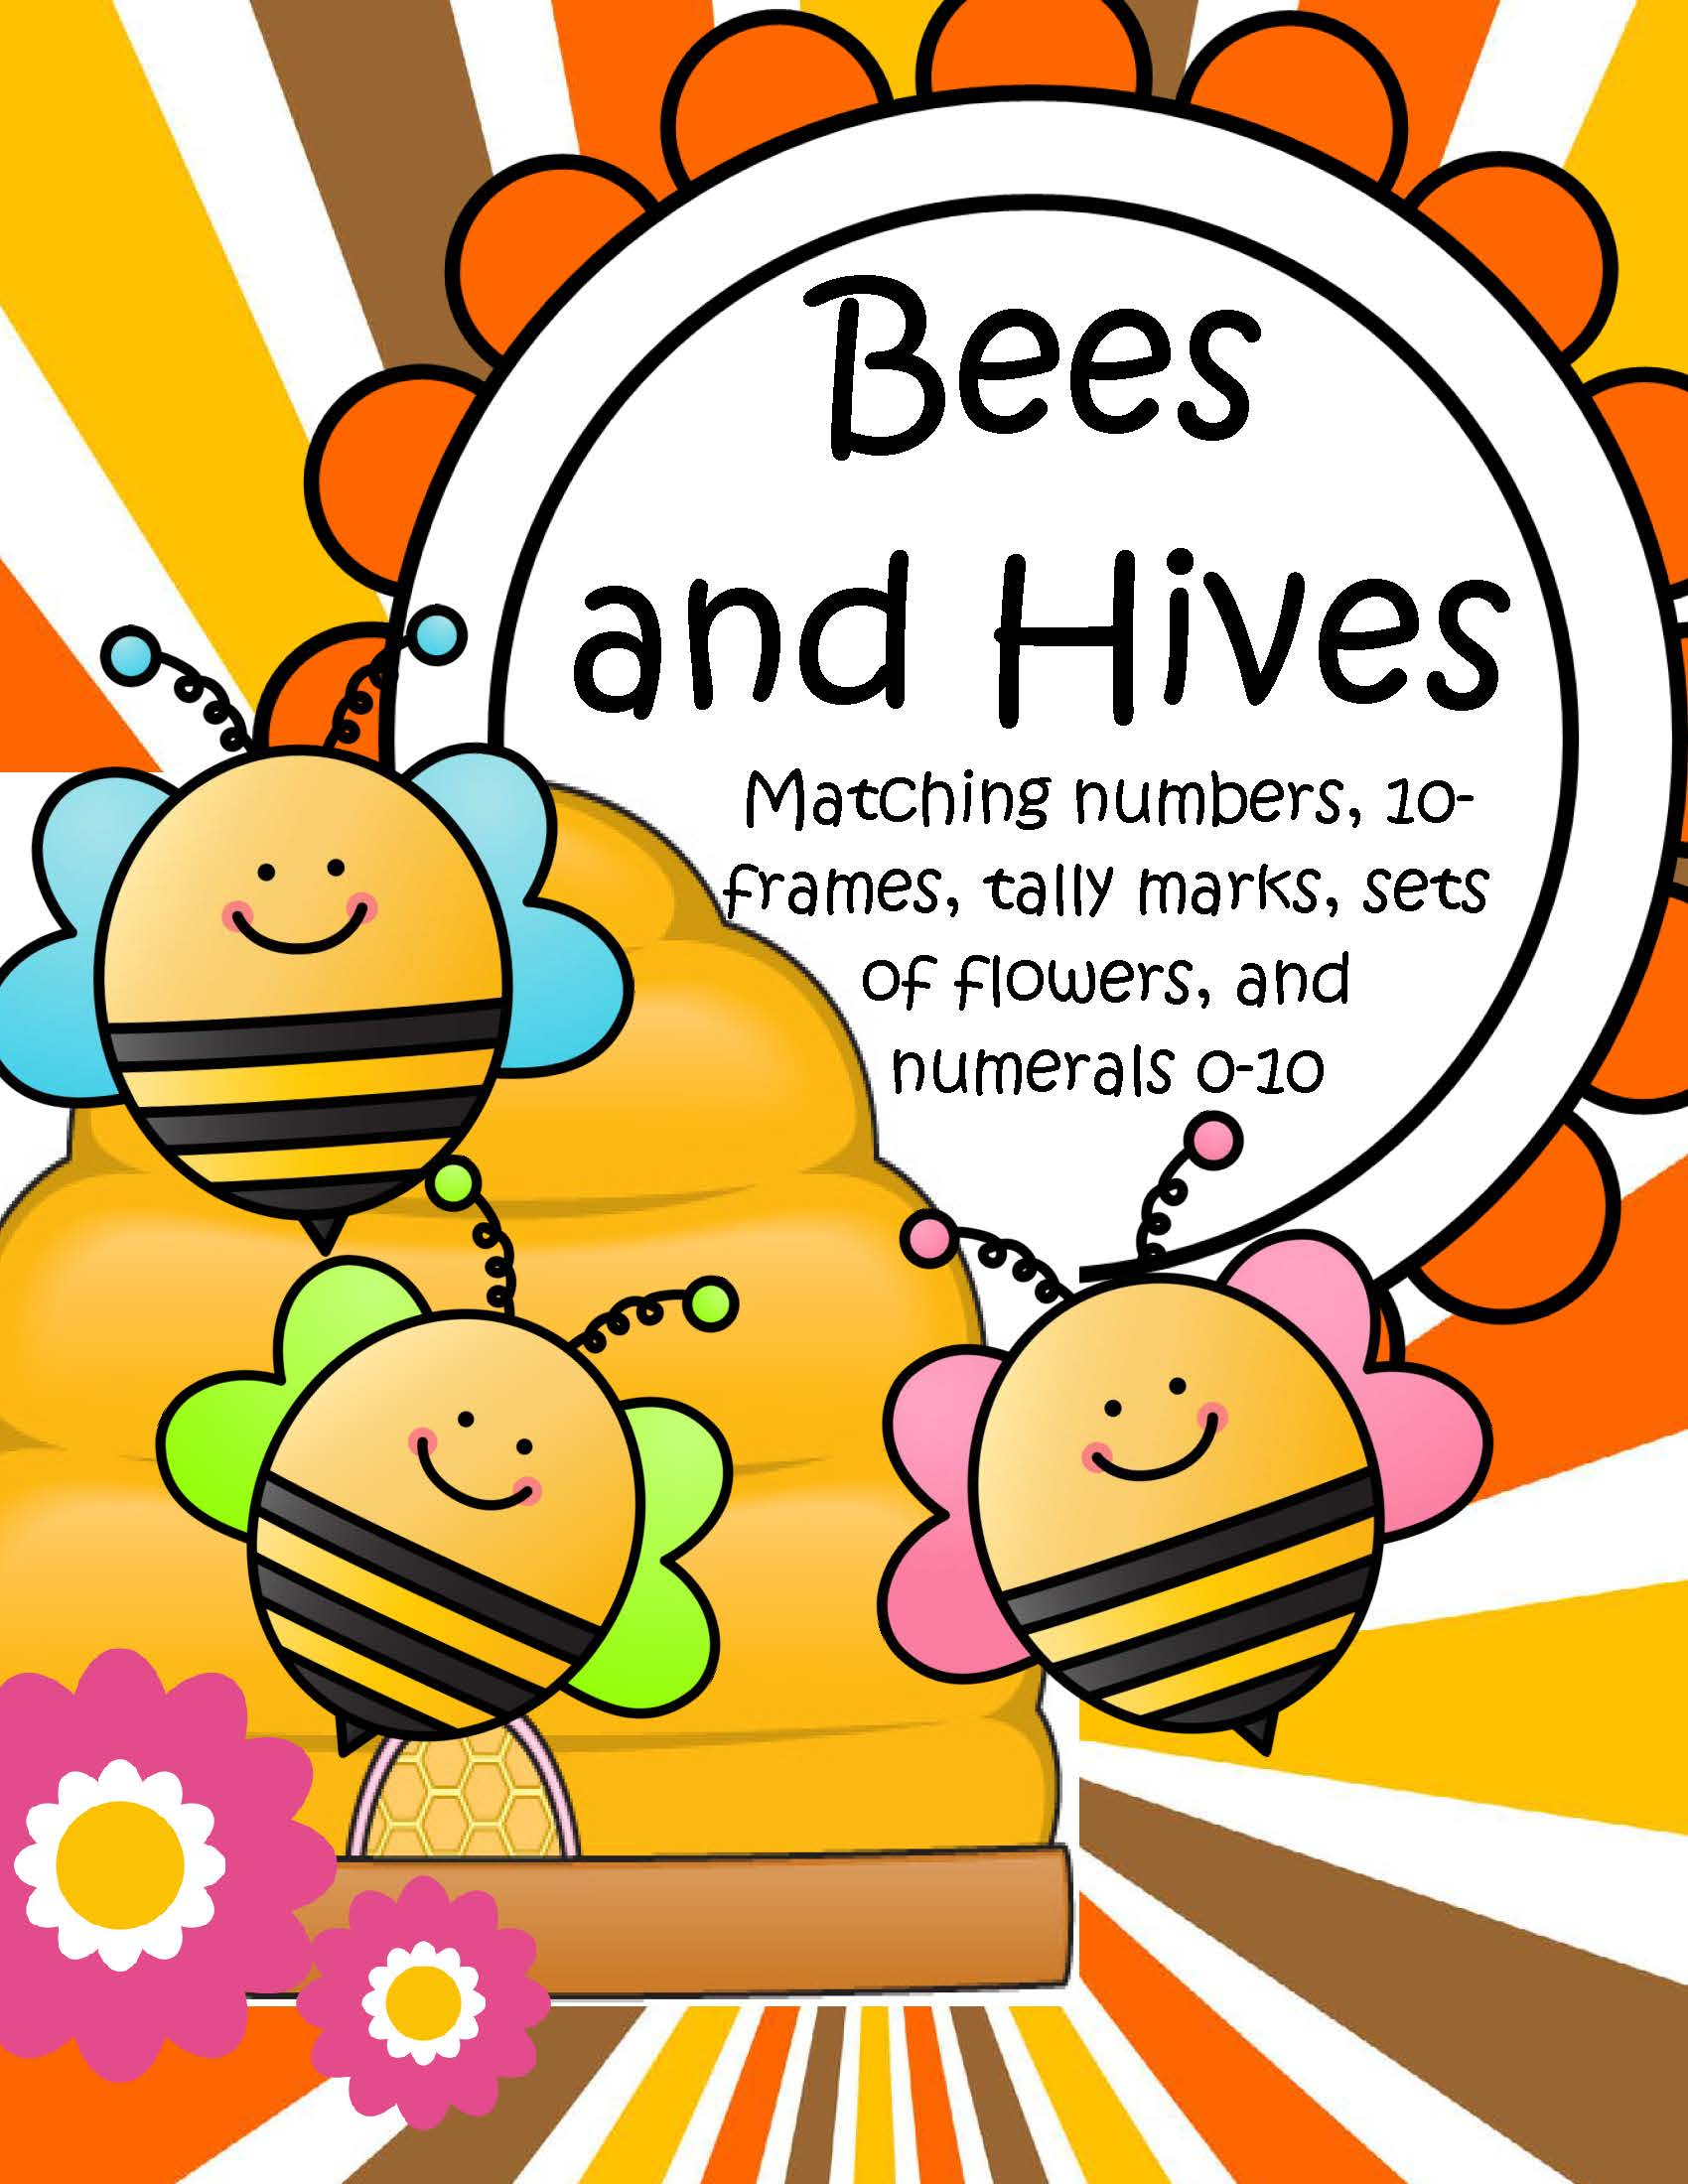 Bees And Hives Matching 10 Frames Tally Marks Sets And